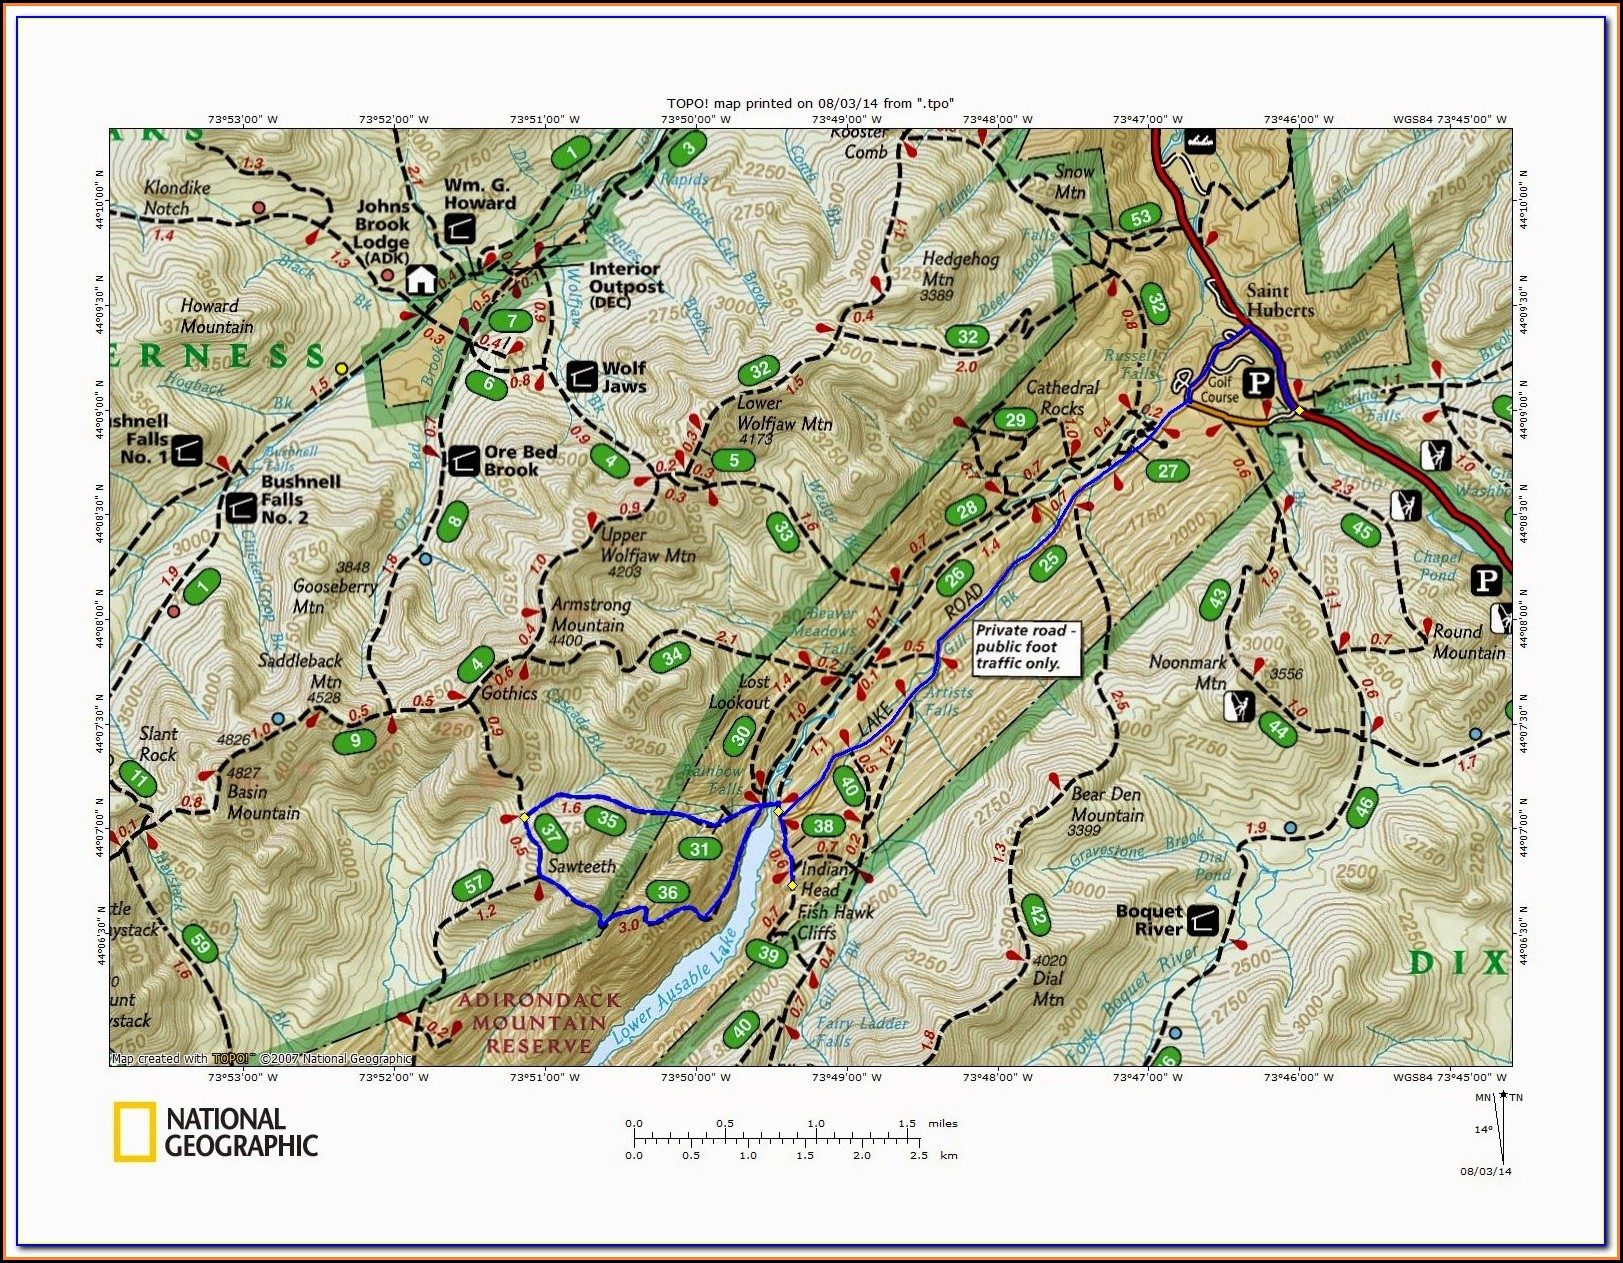 Adirondack Snowmobile Trail Maps